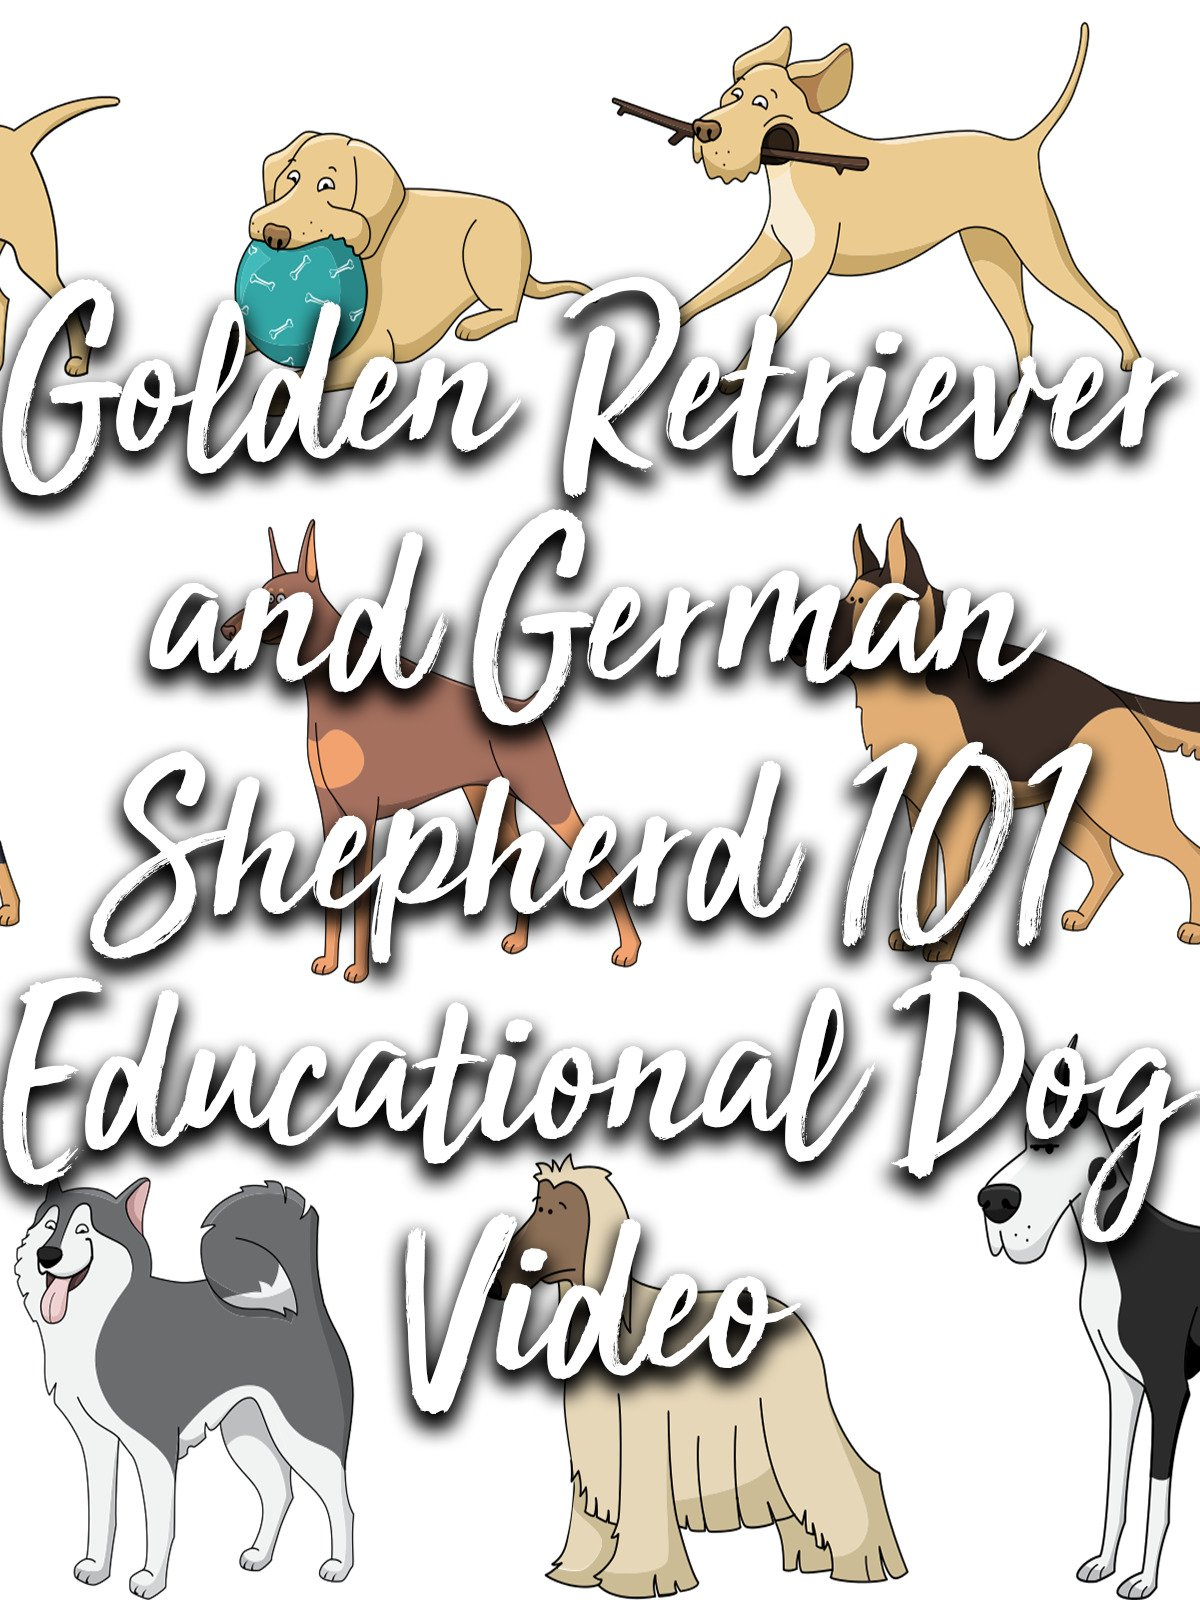 Golden Retriever and German Shepherd 101 Educational Dog Video